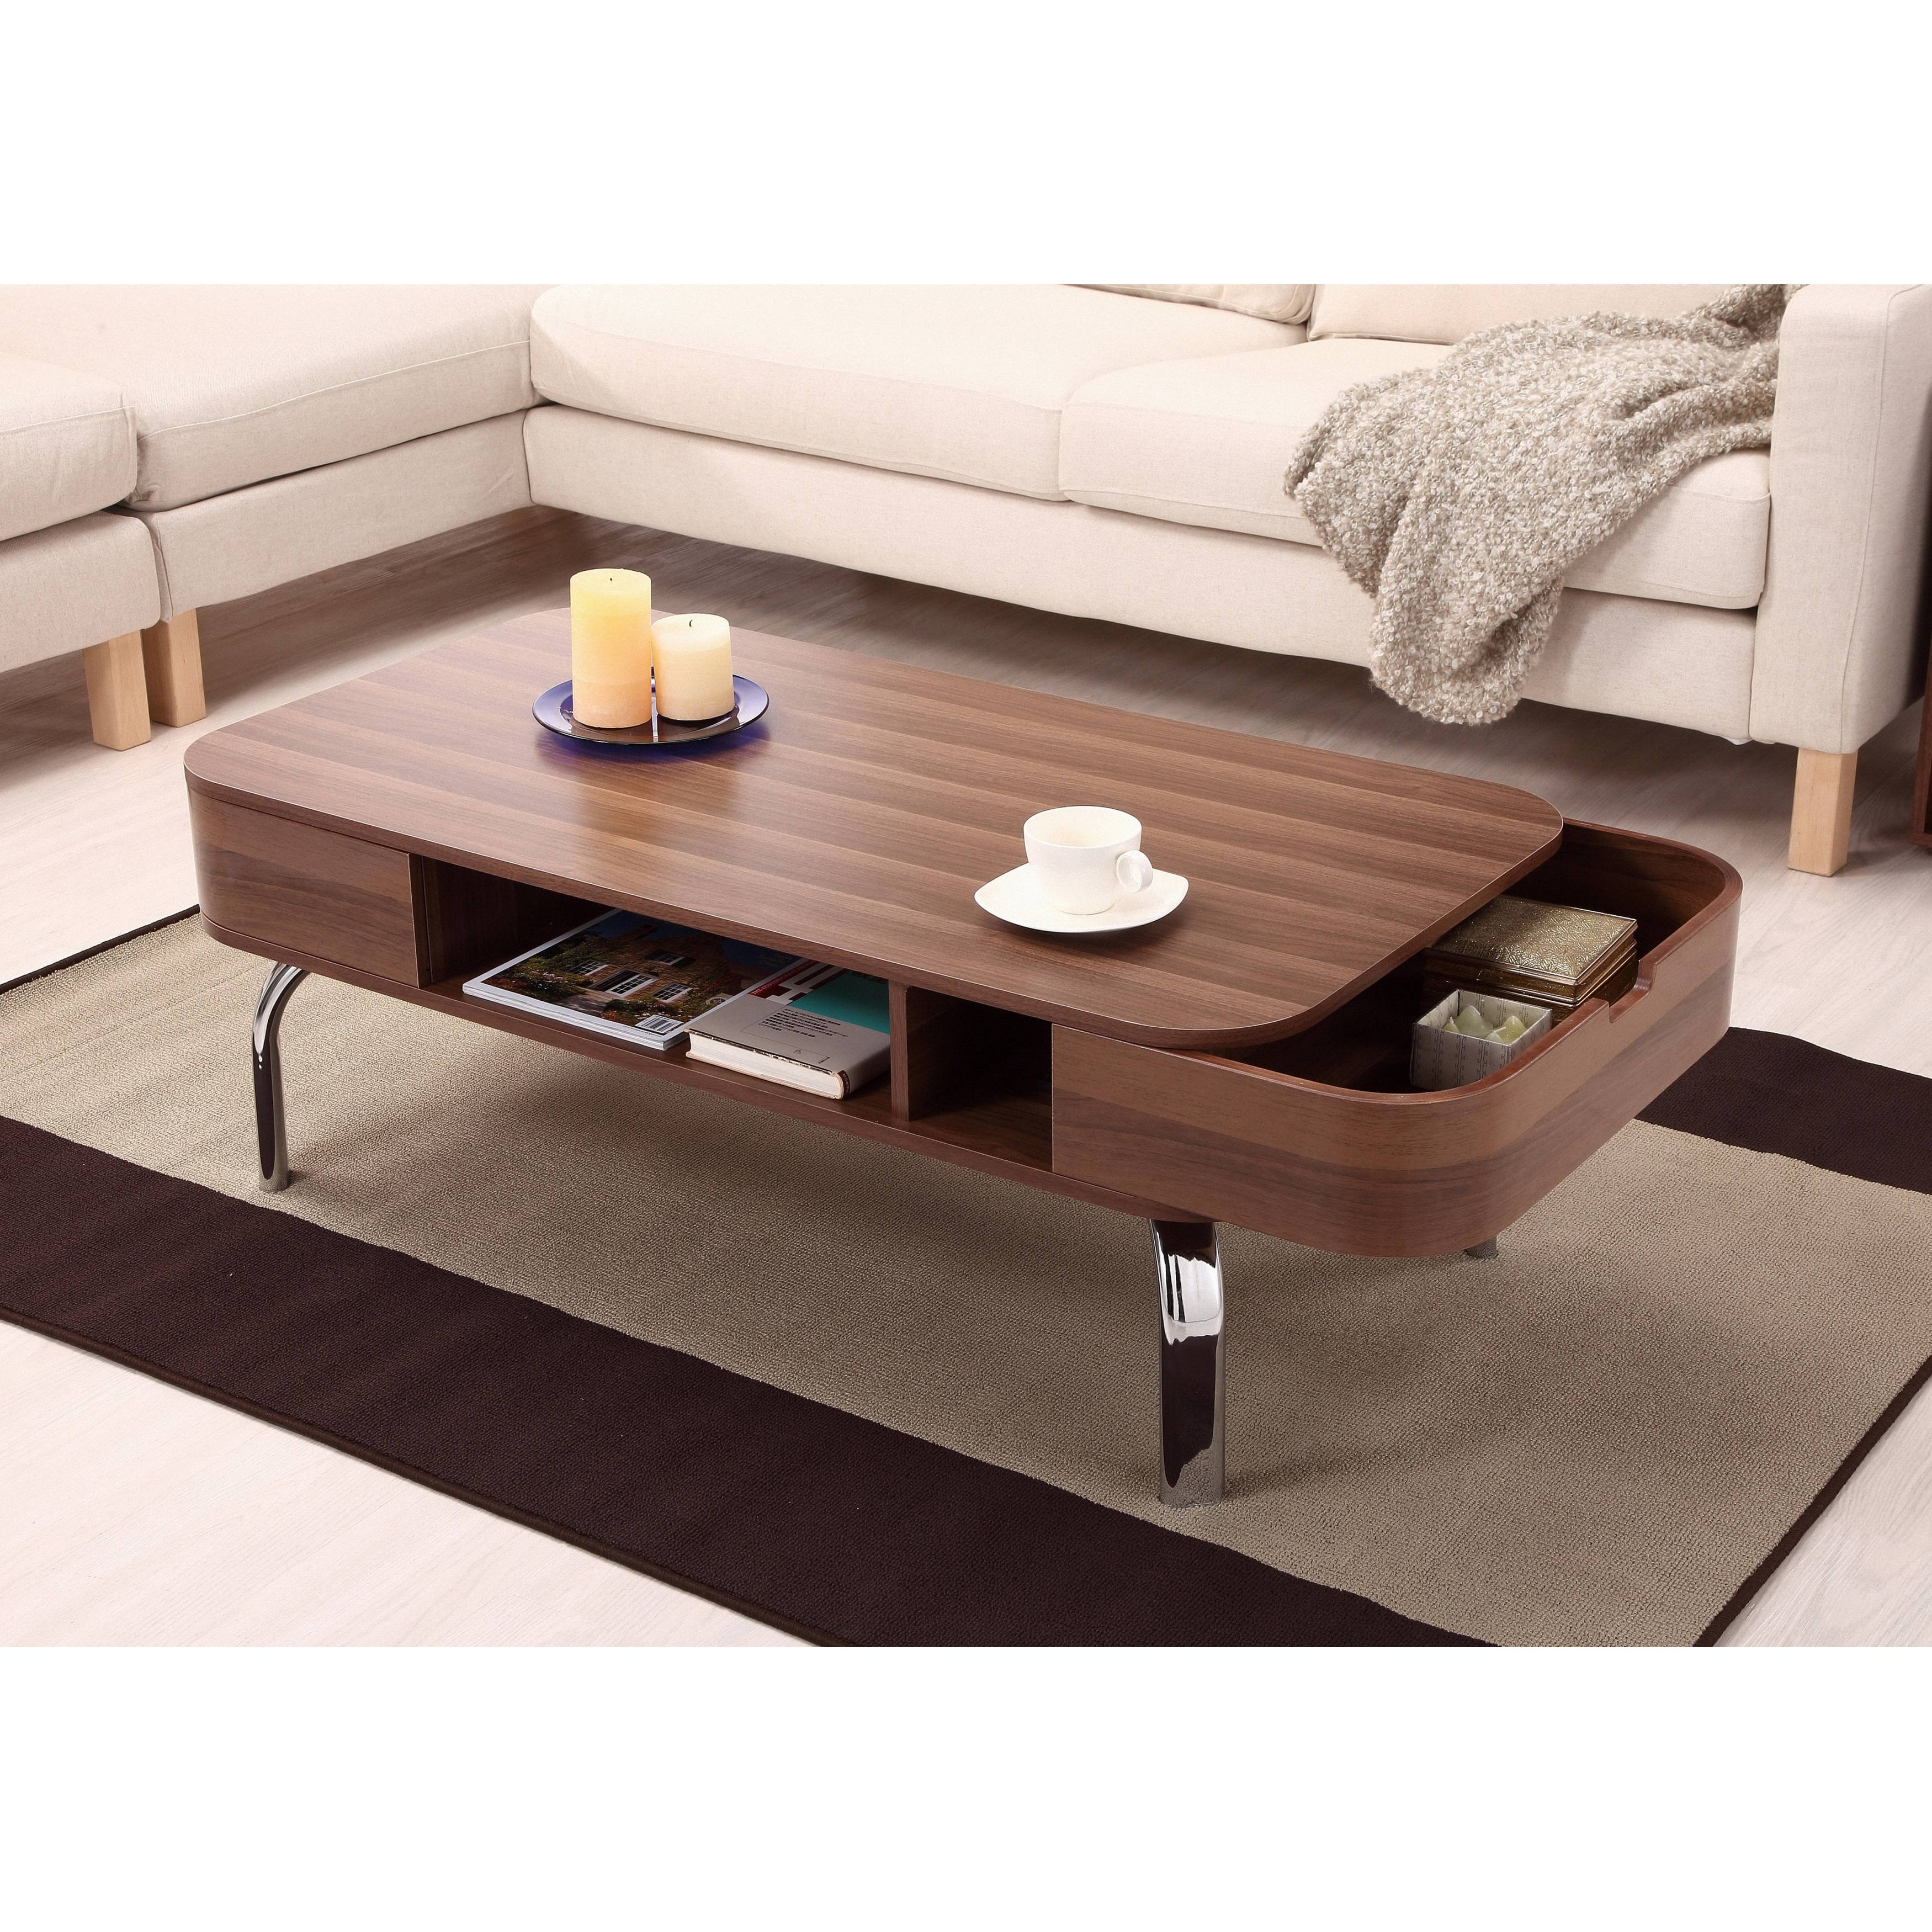 Oval Coffee Table With Storage ~ Bacill inside Coffee Tables With Rounded Corners (Image 20 of 30)